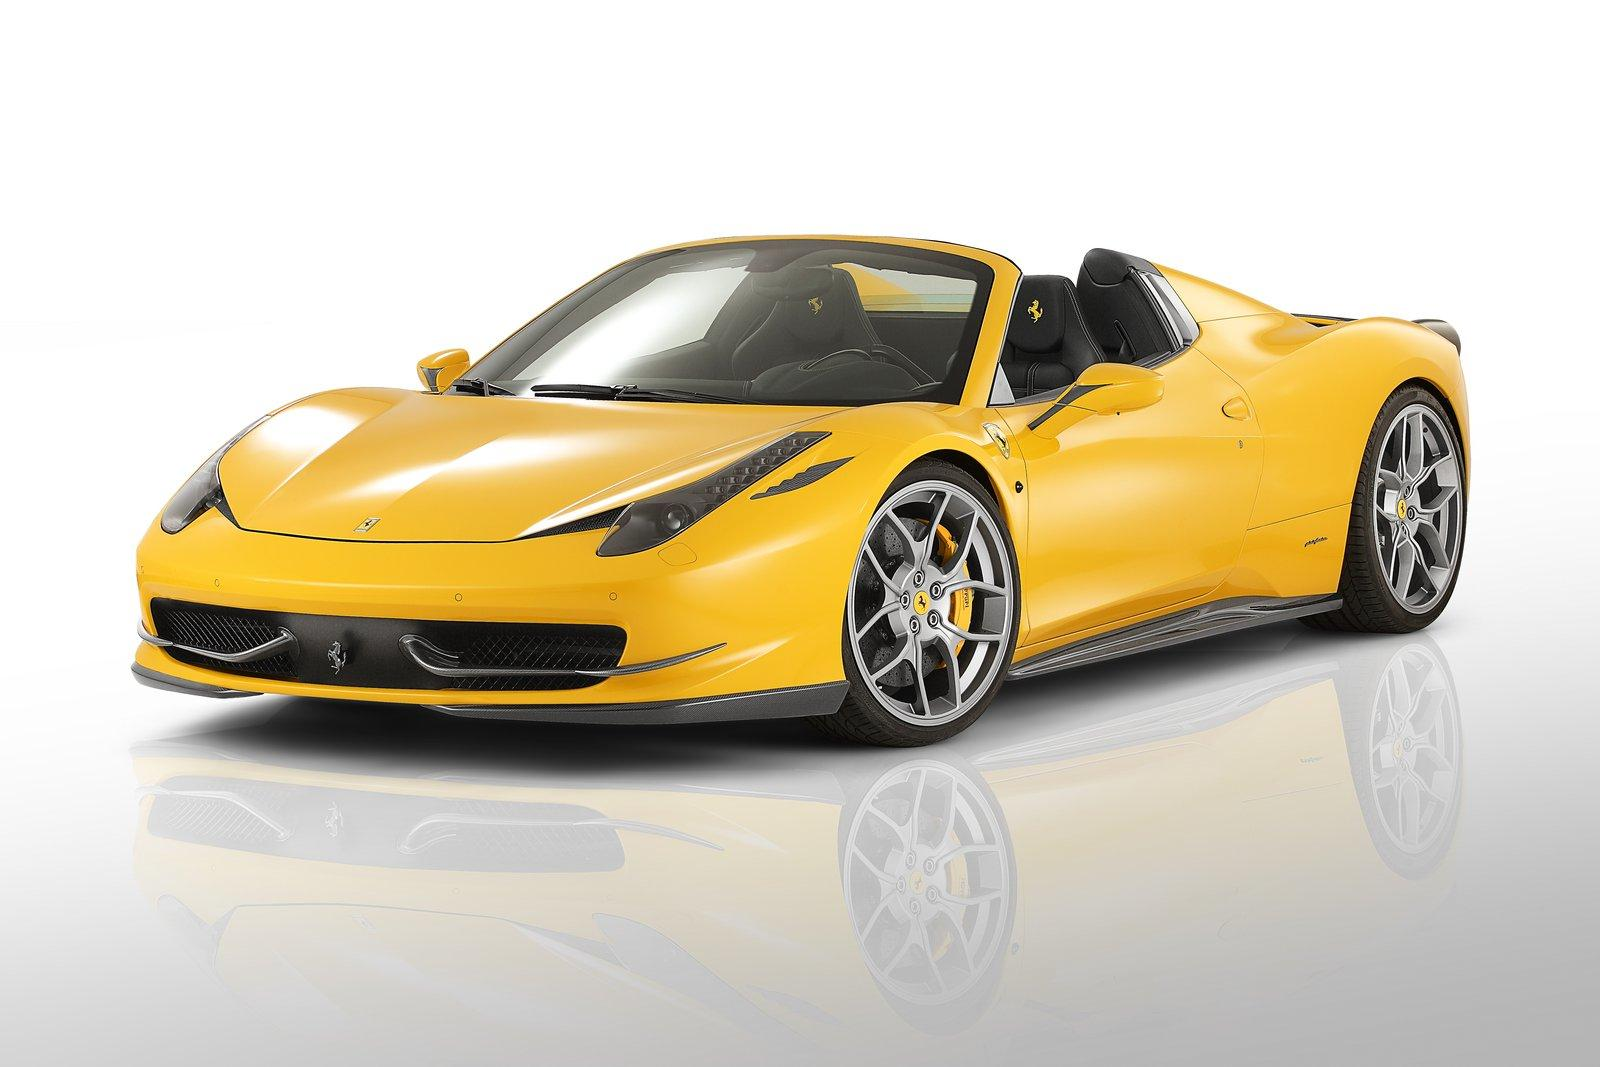 ferrari 458 spider news and information autoblog - Ferrari 2014 Yellow